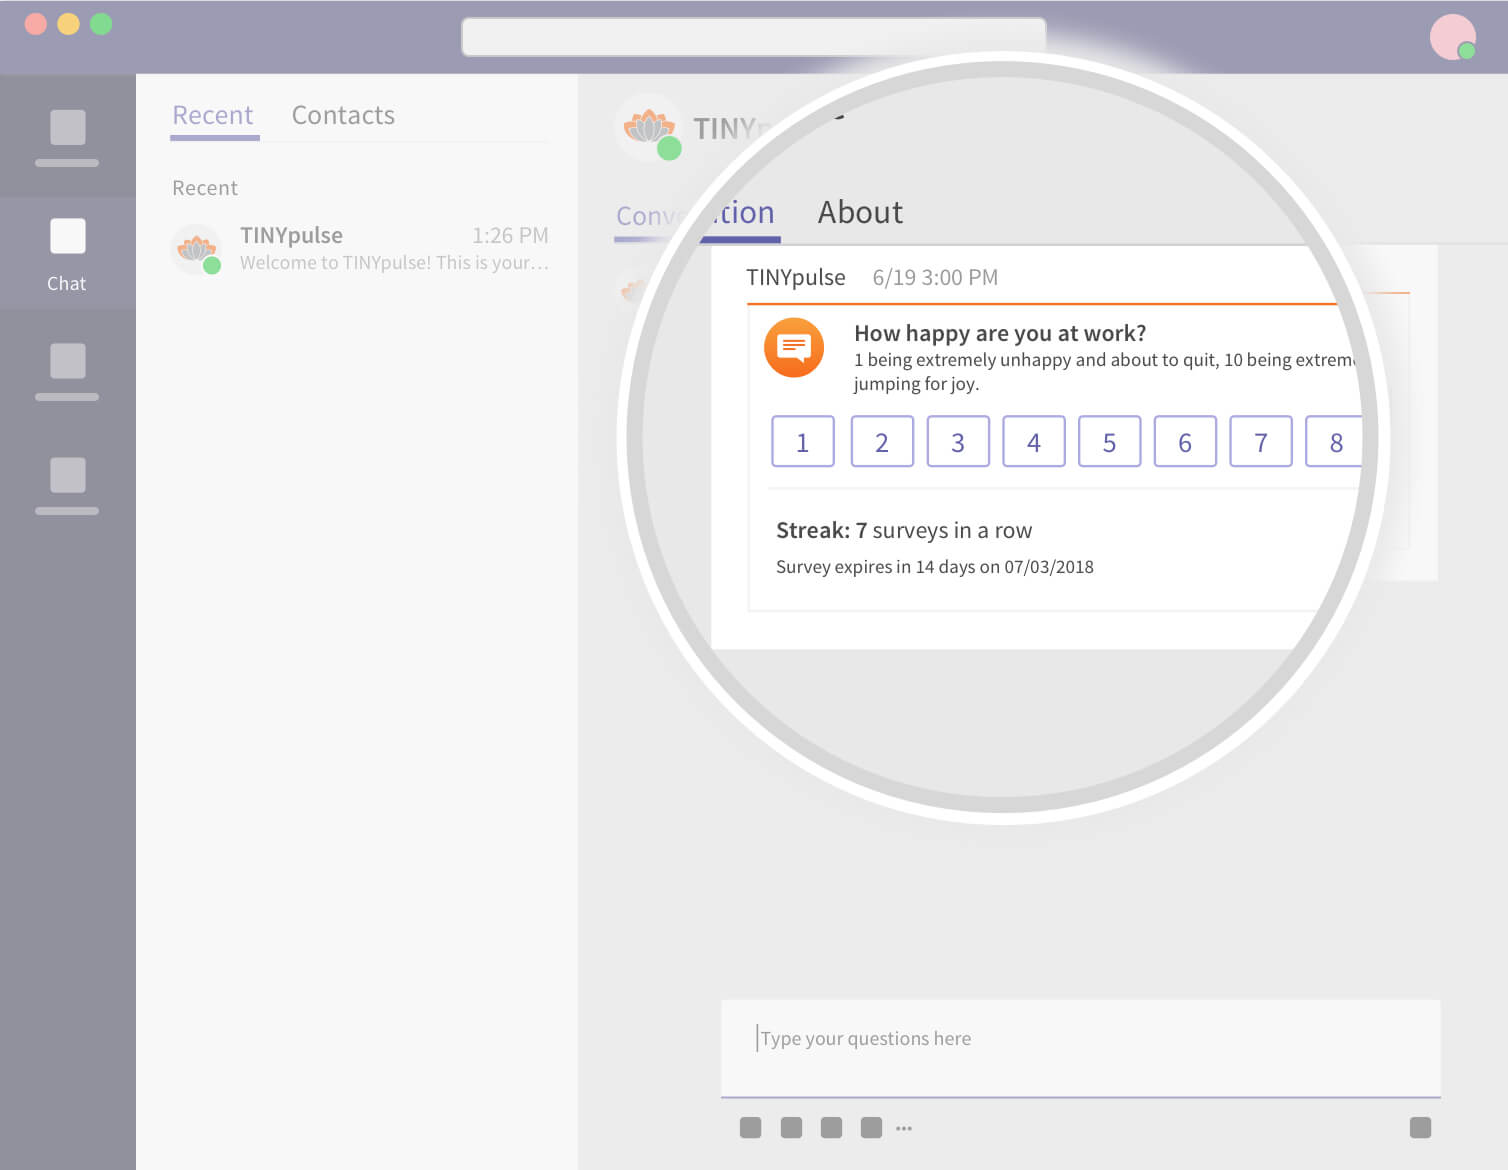 Stylized screenshot of TINYpulse in Microsoft Teams